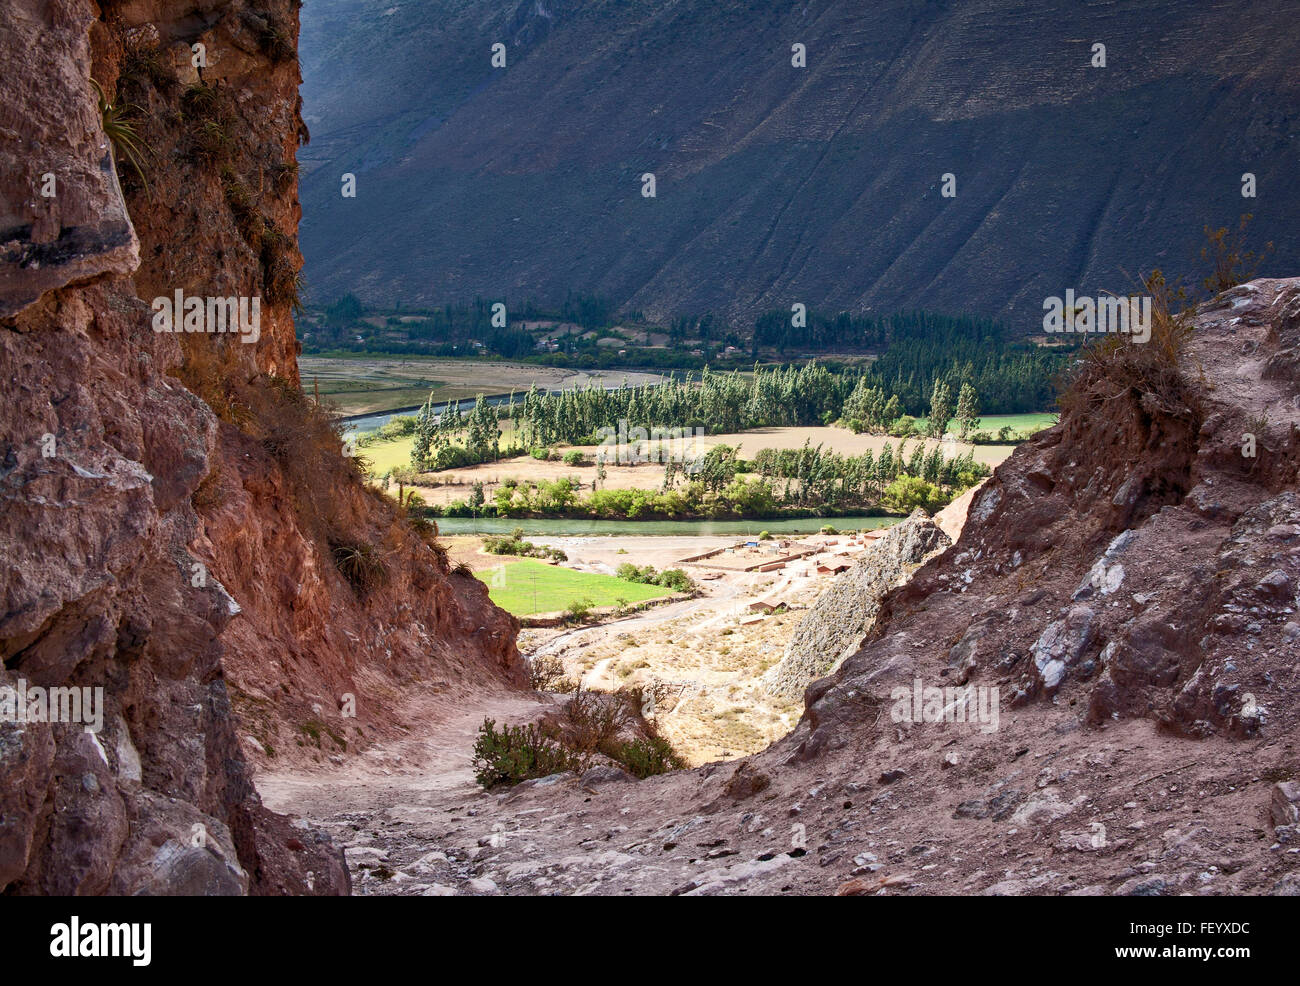 The Urubamba River winds through the Sacred Valley of the Incas near Maras.  Peru. - Stock Image